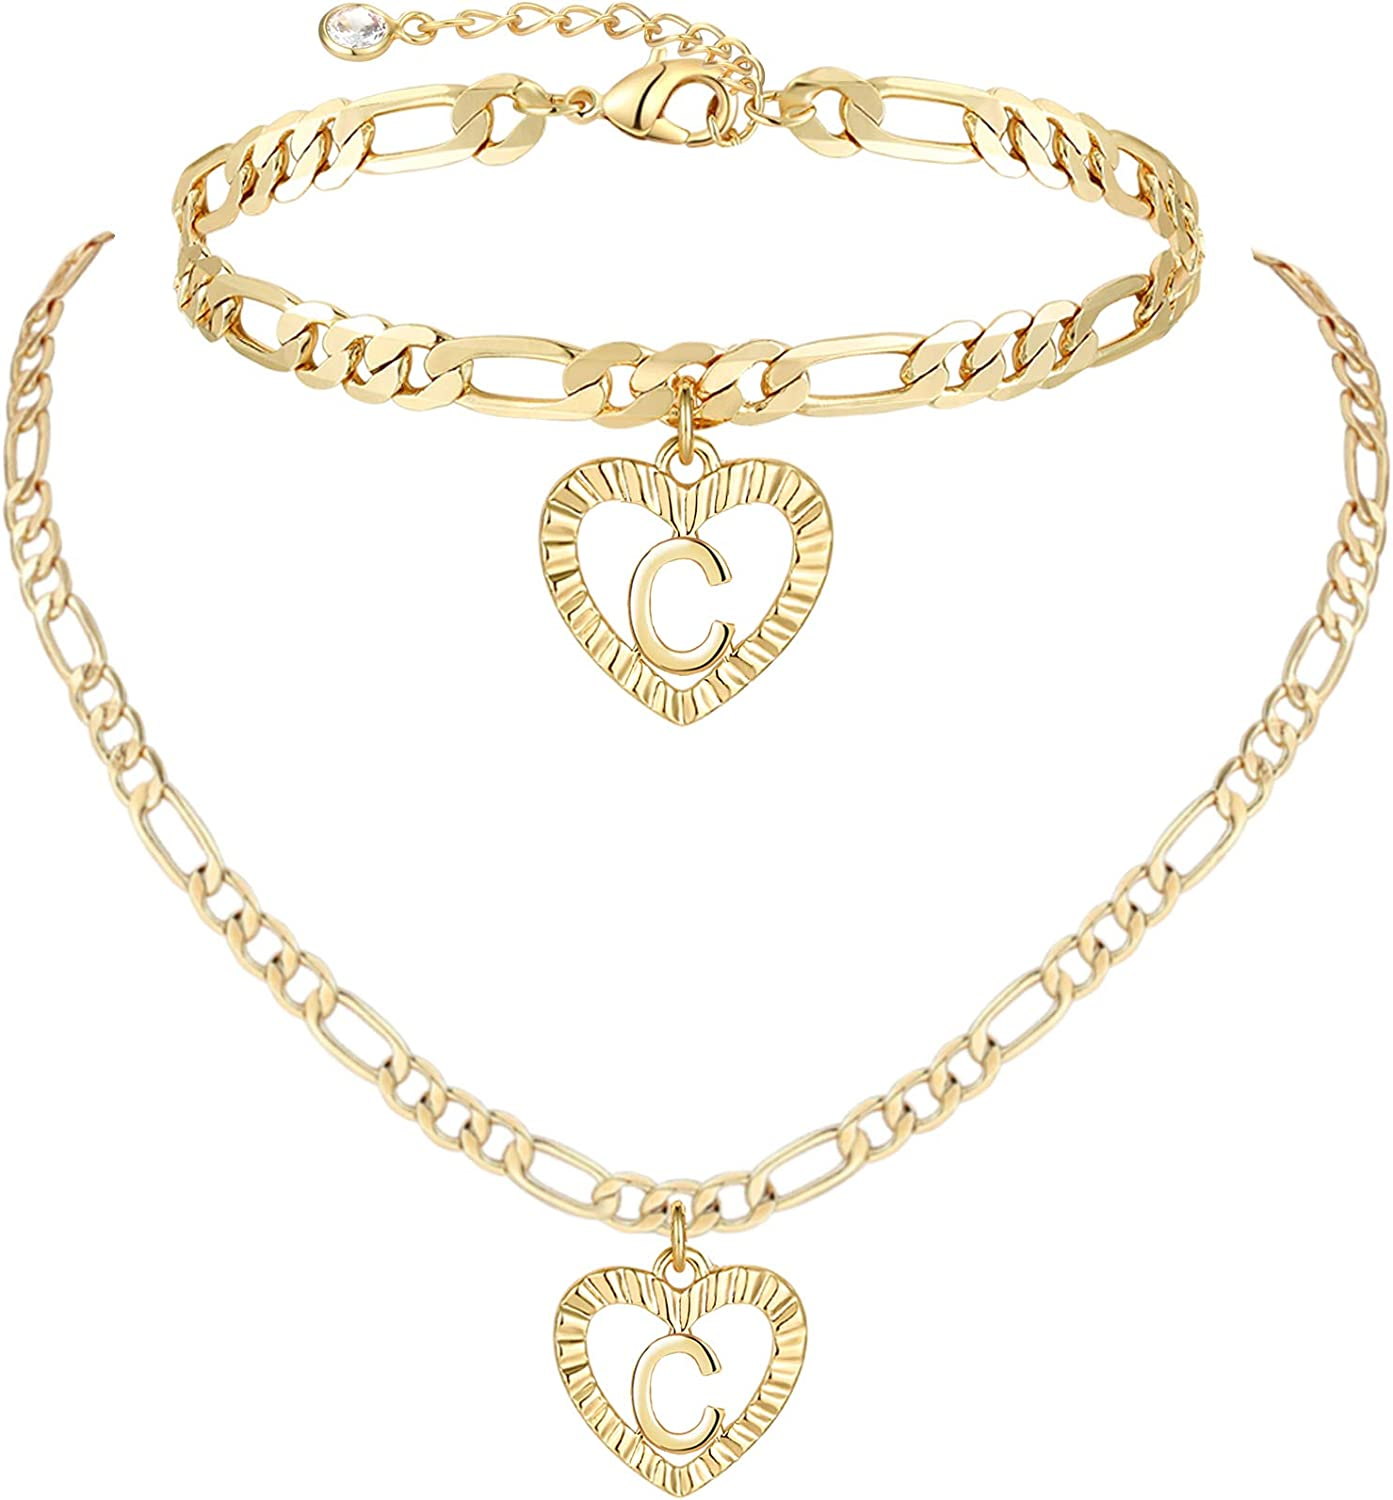 YANODA Gold Initial Pendant Necklace Anklet Bracelet for Women 14K Gold Plated Figaro Chain Letter Initial Heart Necklace Anklets Alphabet Foot Jewelry Personalized Gifts for Women Girls